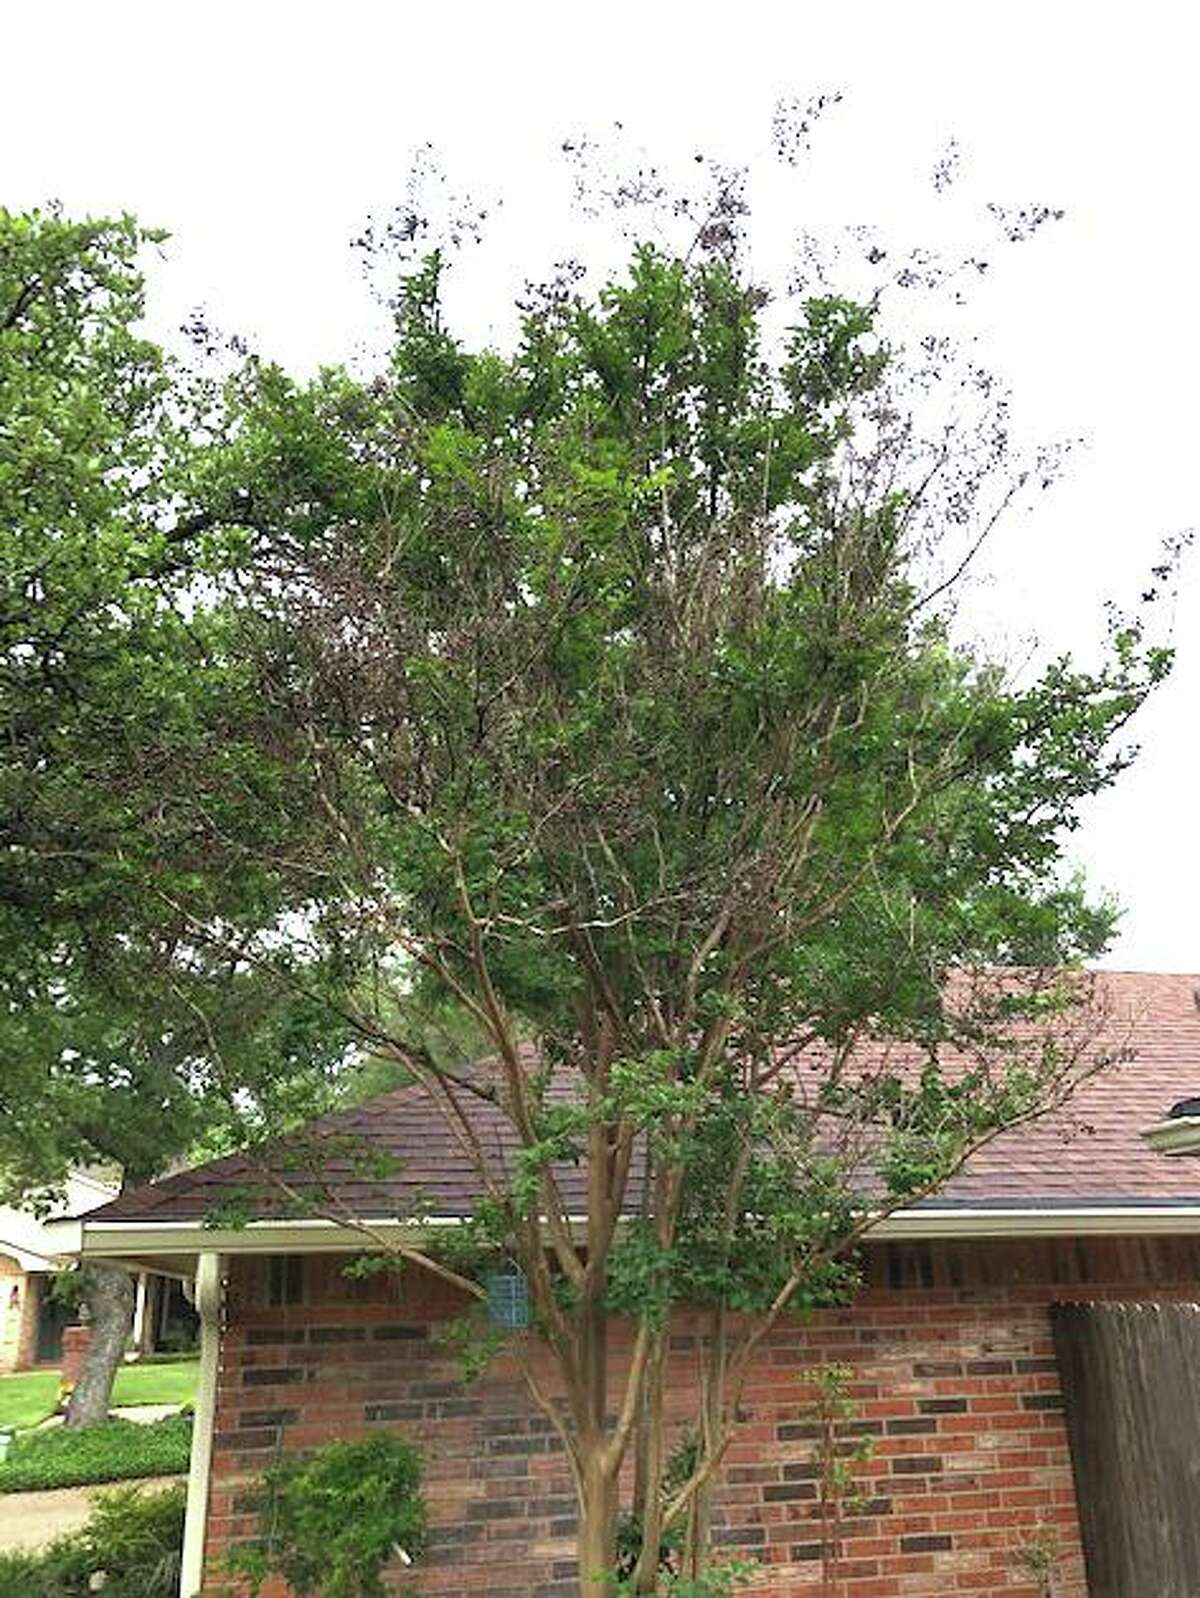 These crape myrtles have a good bit of new growth, but the tips of those same branches have 15 to 18 inches of dead ends from freeze damage. They should be pruned off.